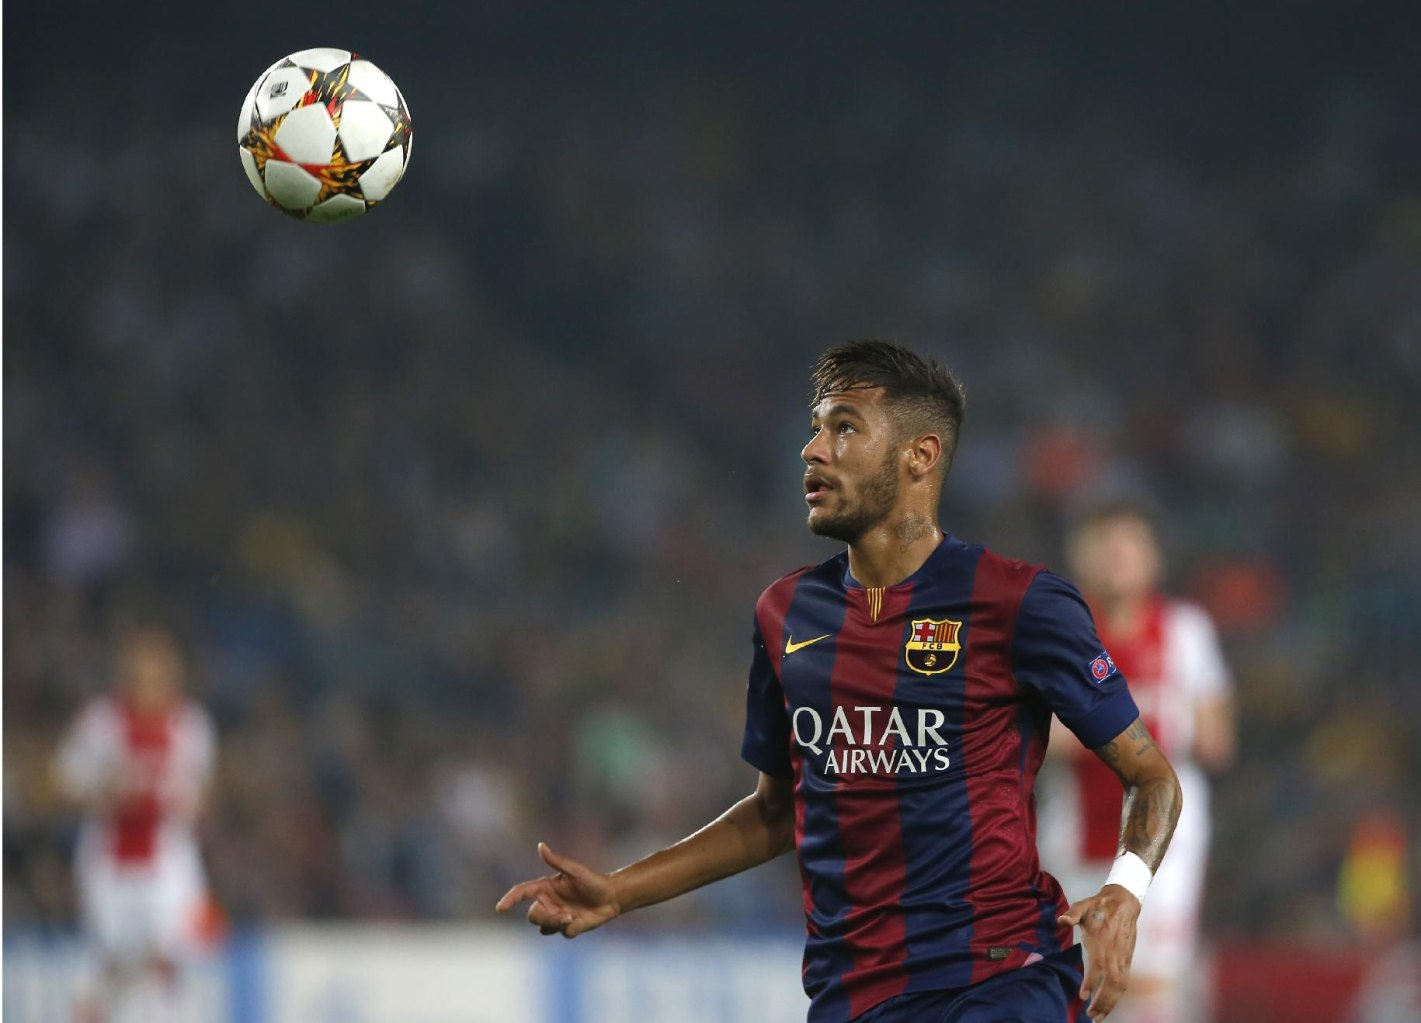 Neymar in FC Barcelona in 2014